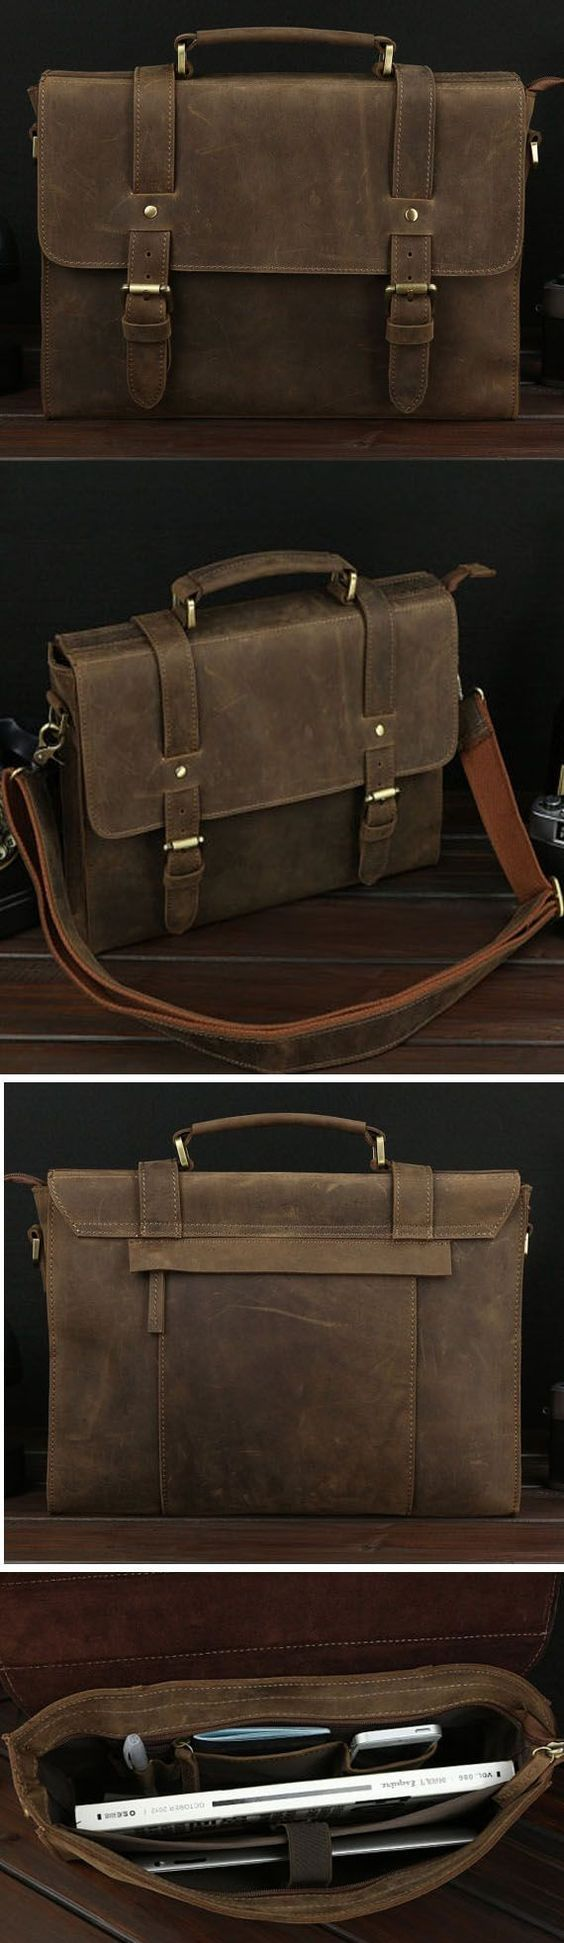 HANDMADE VINTAGE STYLE LEATHER BRIEFCASE MESSENGER BAG SATCHEL BAG CROSSBODY…